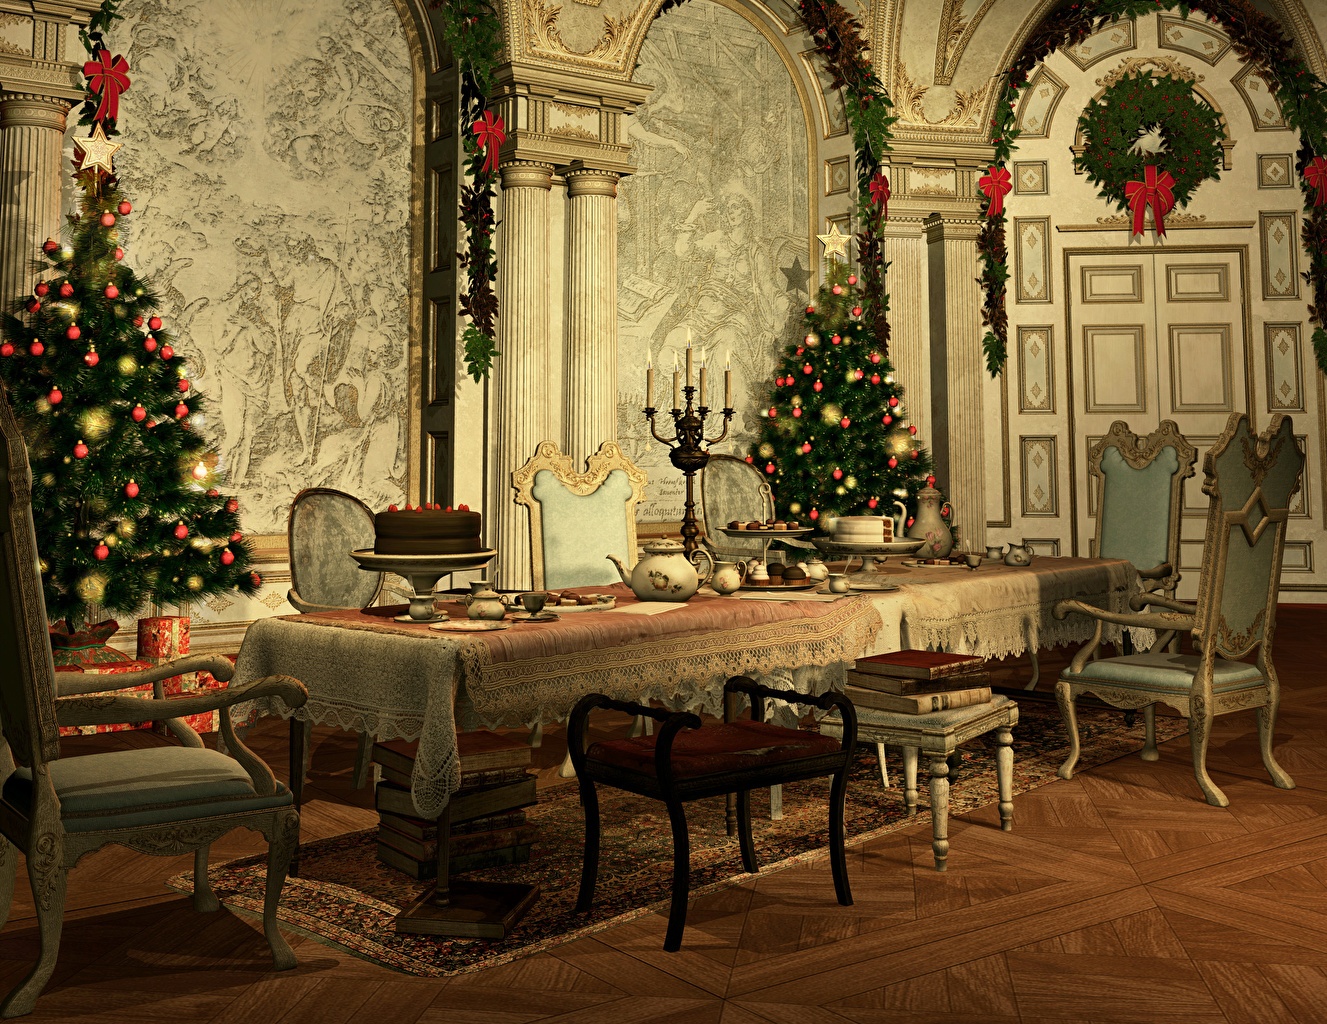 Photo New year 3D Graphics New Year tree Interior Table Chairs Design Christmas Christmas tree Chair